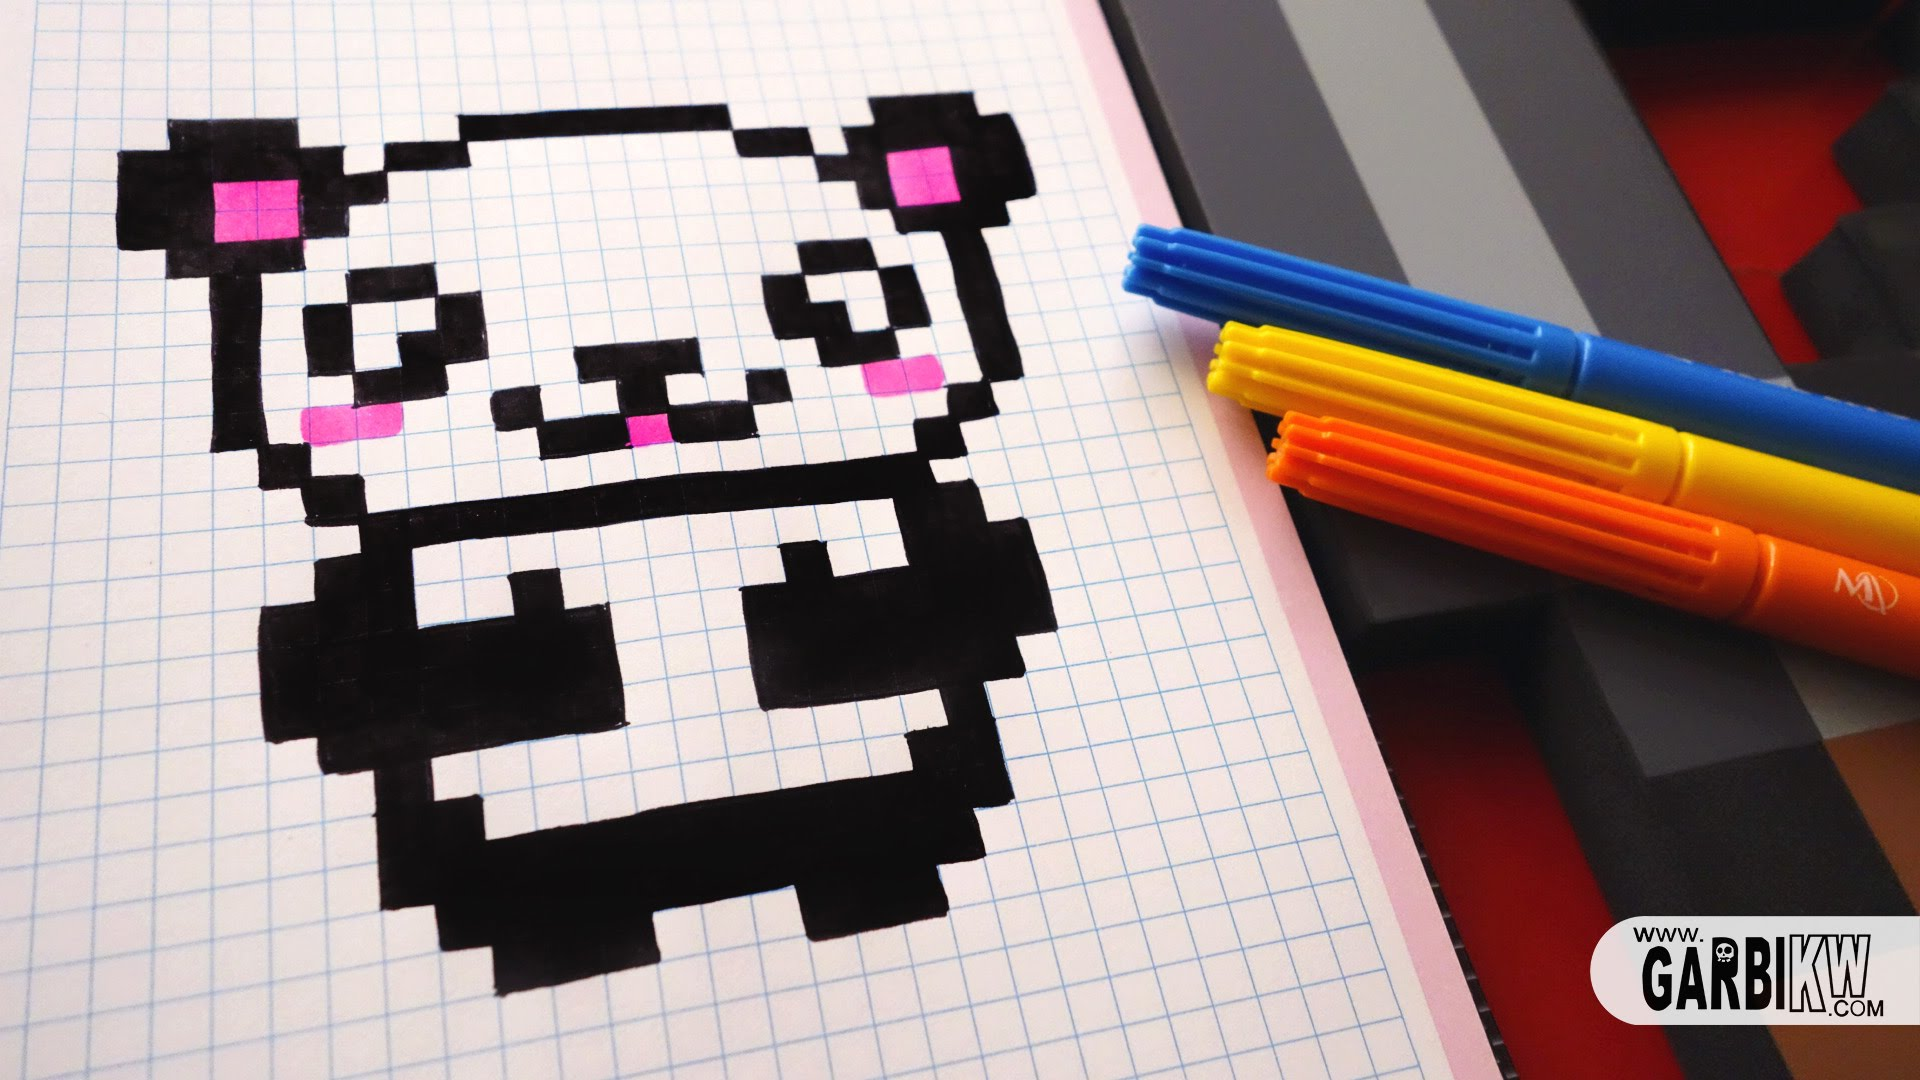 Drawn pixel art kawaii To YouTube How Handmade Pixel